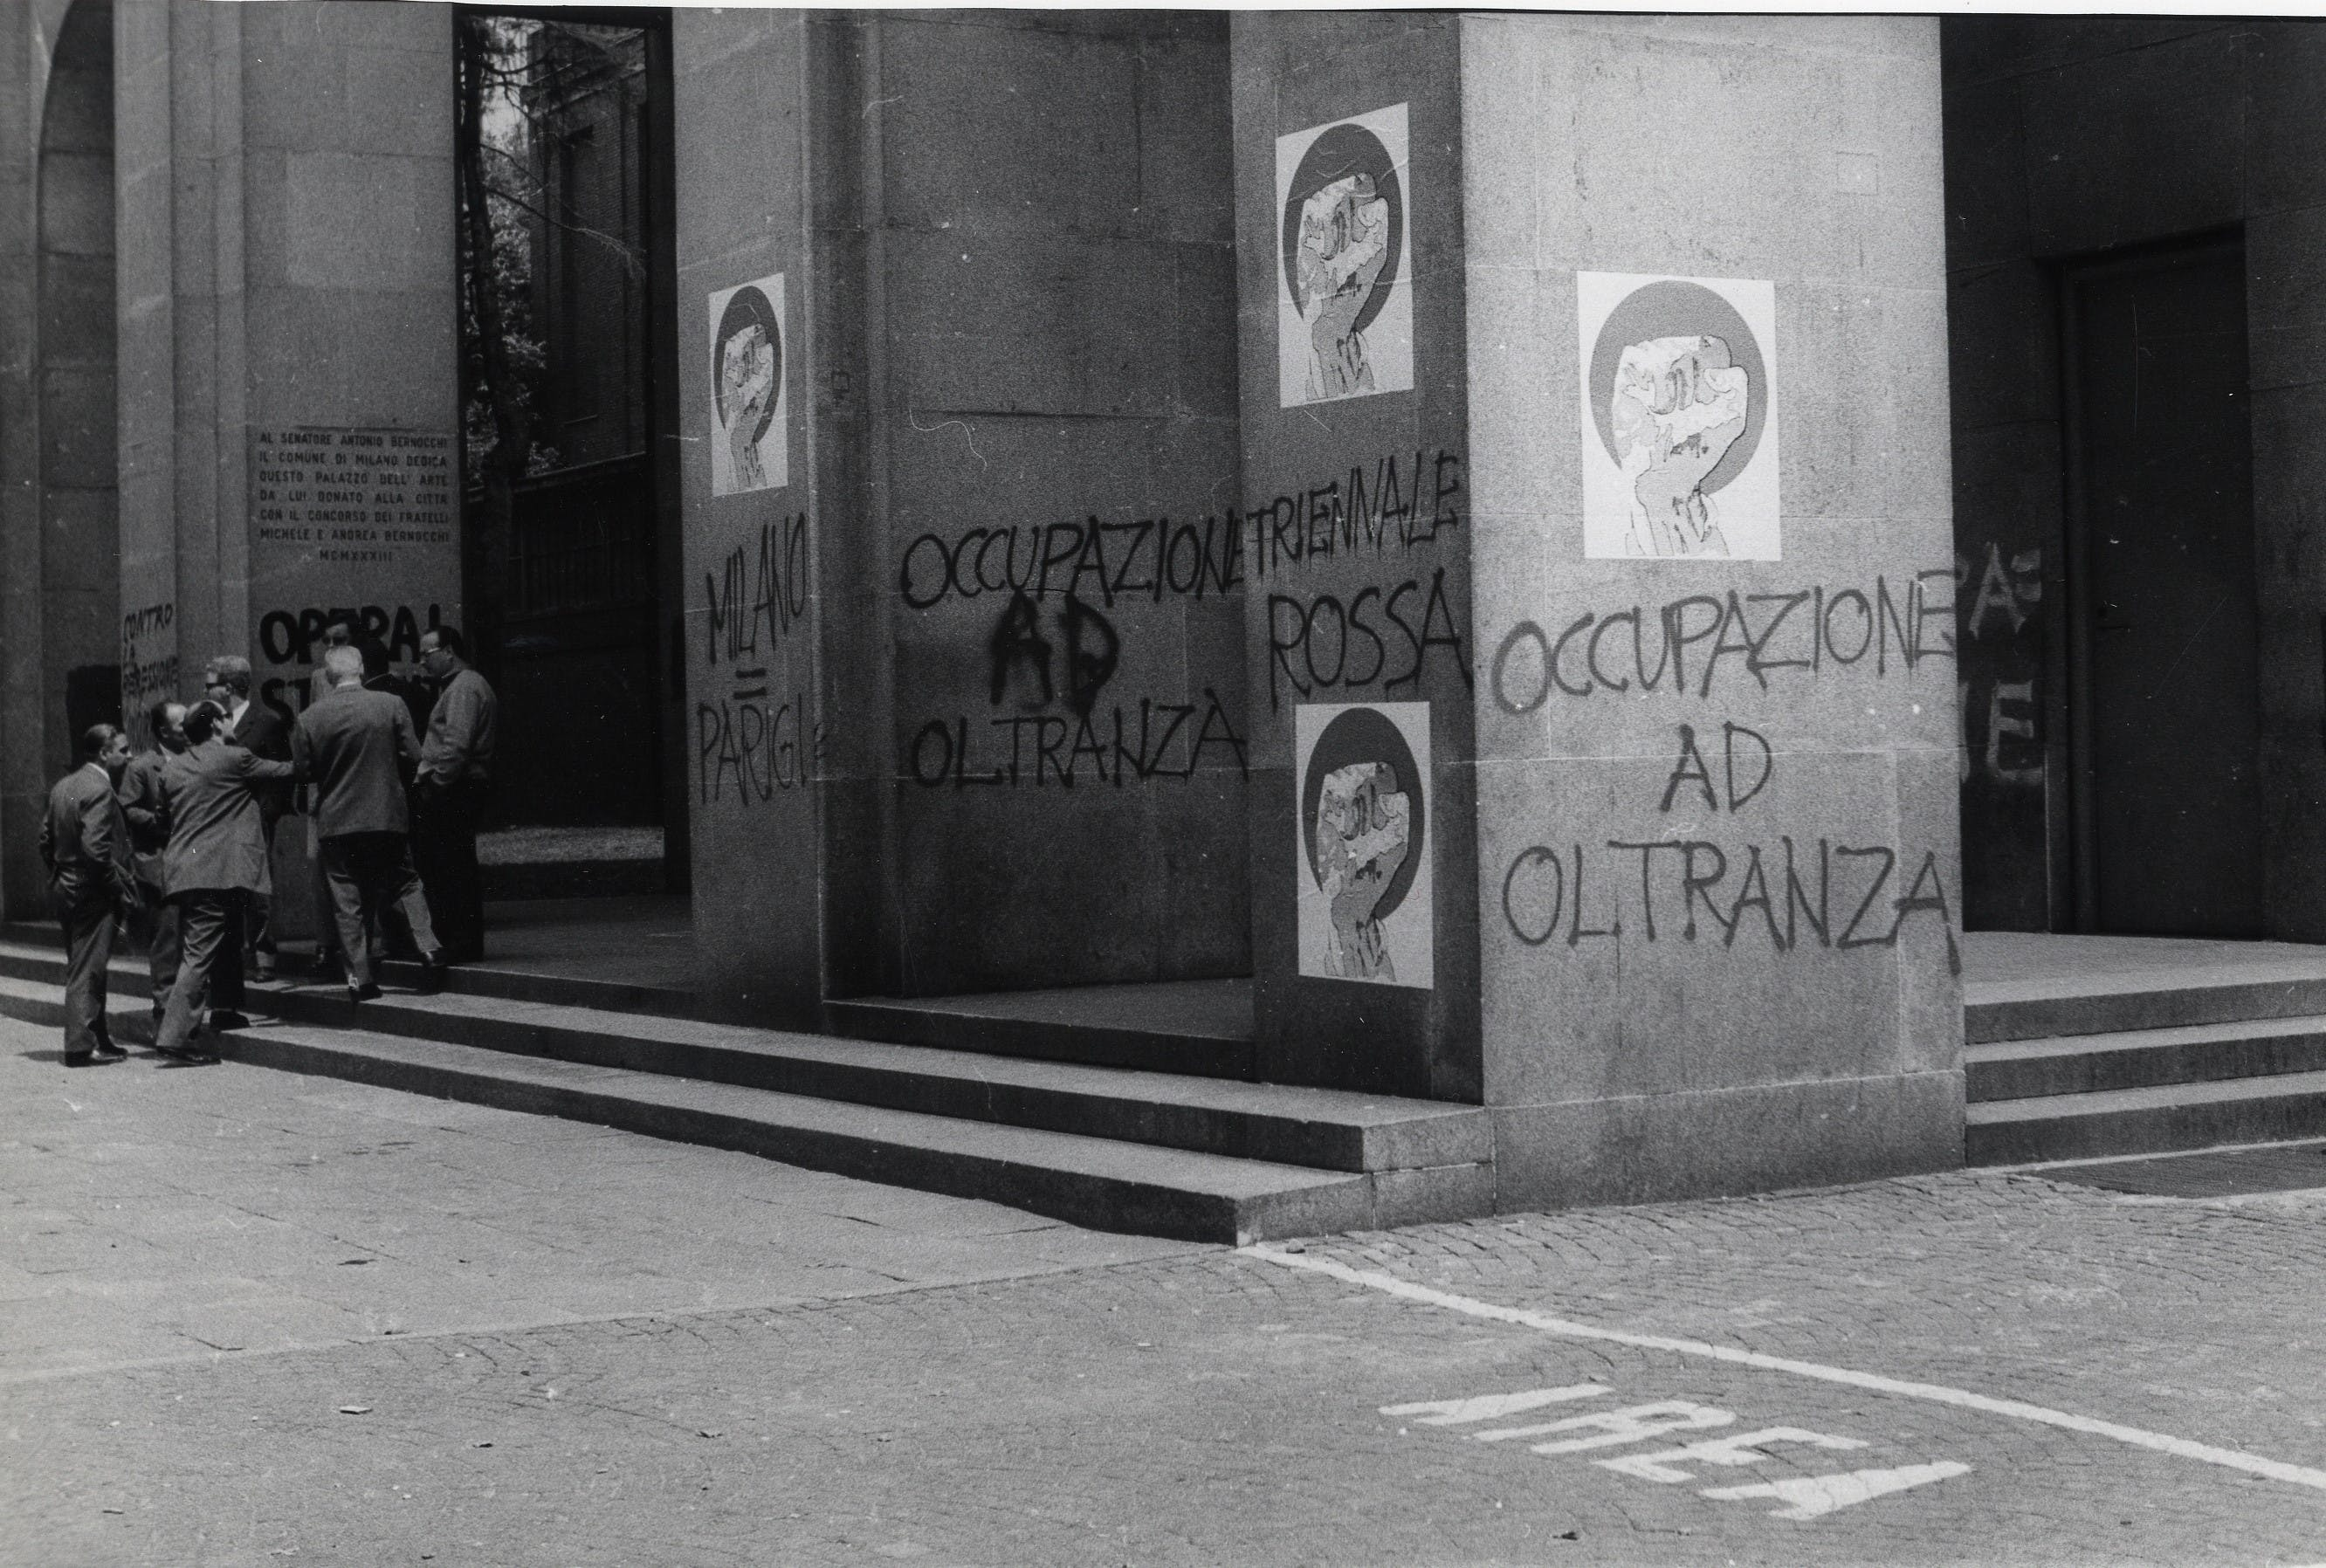 1968: Protests at the opening of the 14th Triennale